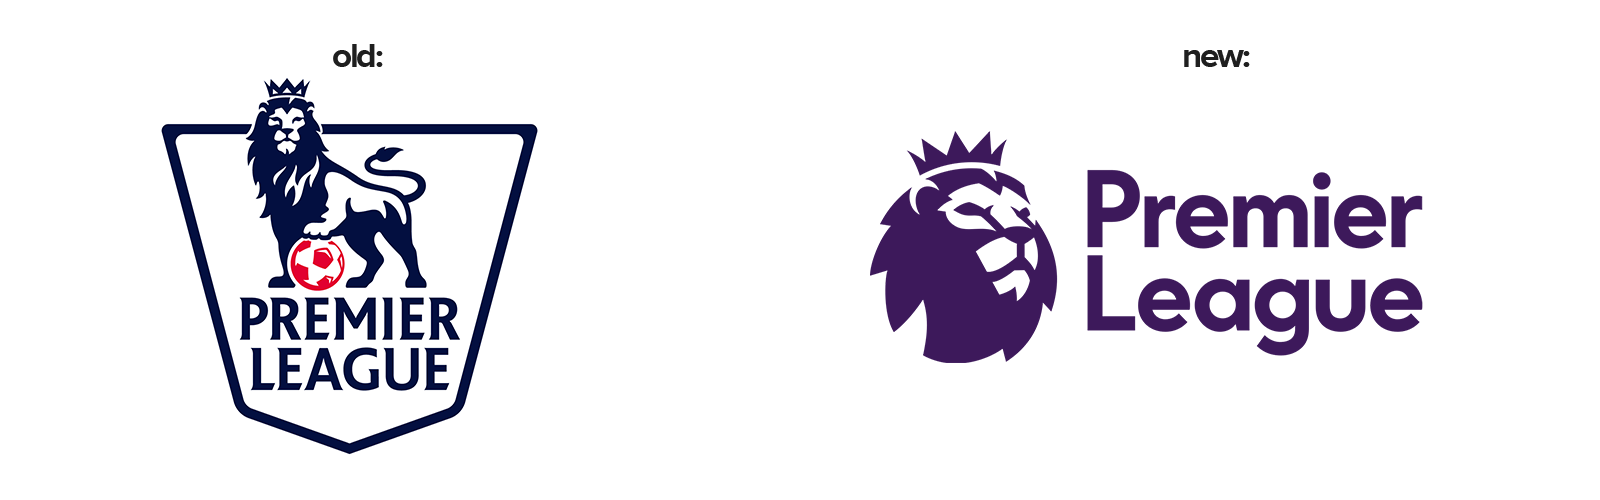 Premier League 2016 rebrand